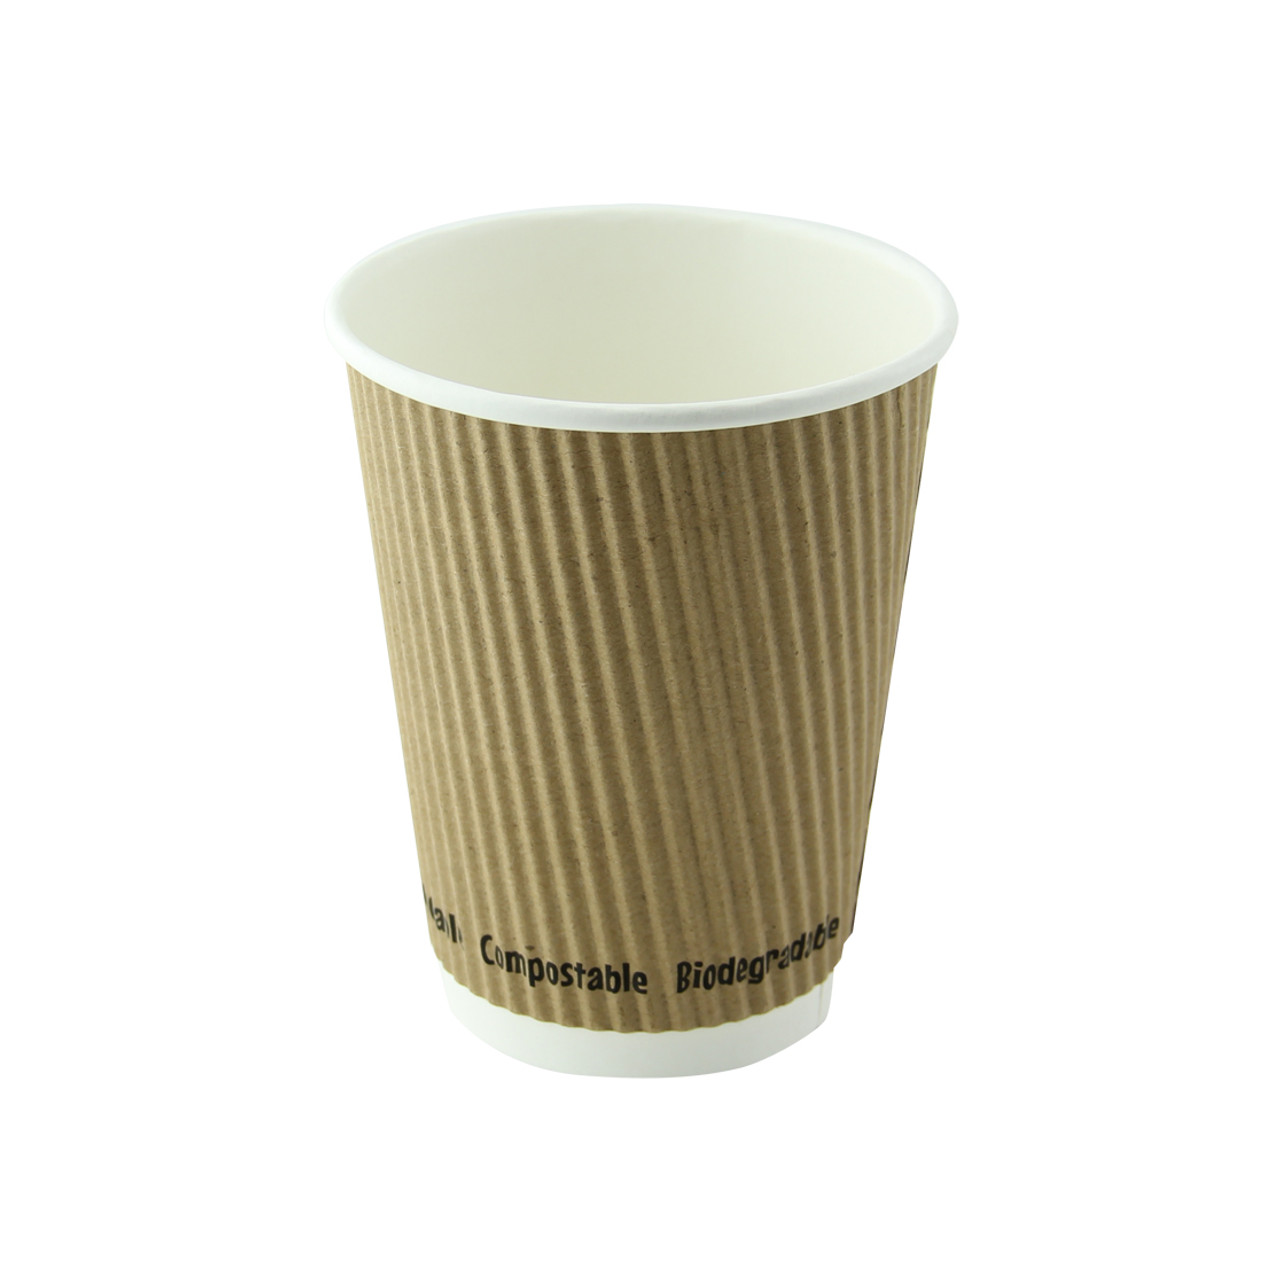 Compostable Rippled Kraft Cup -12oz Dia:3.5in H:4.25in